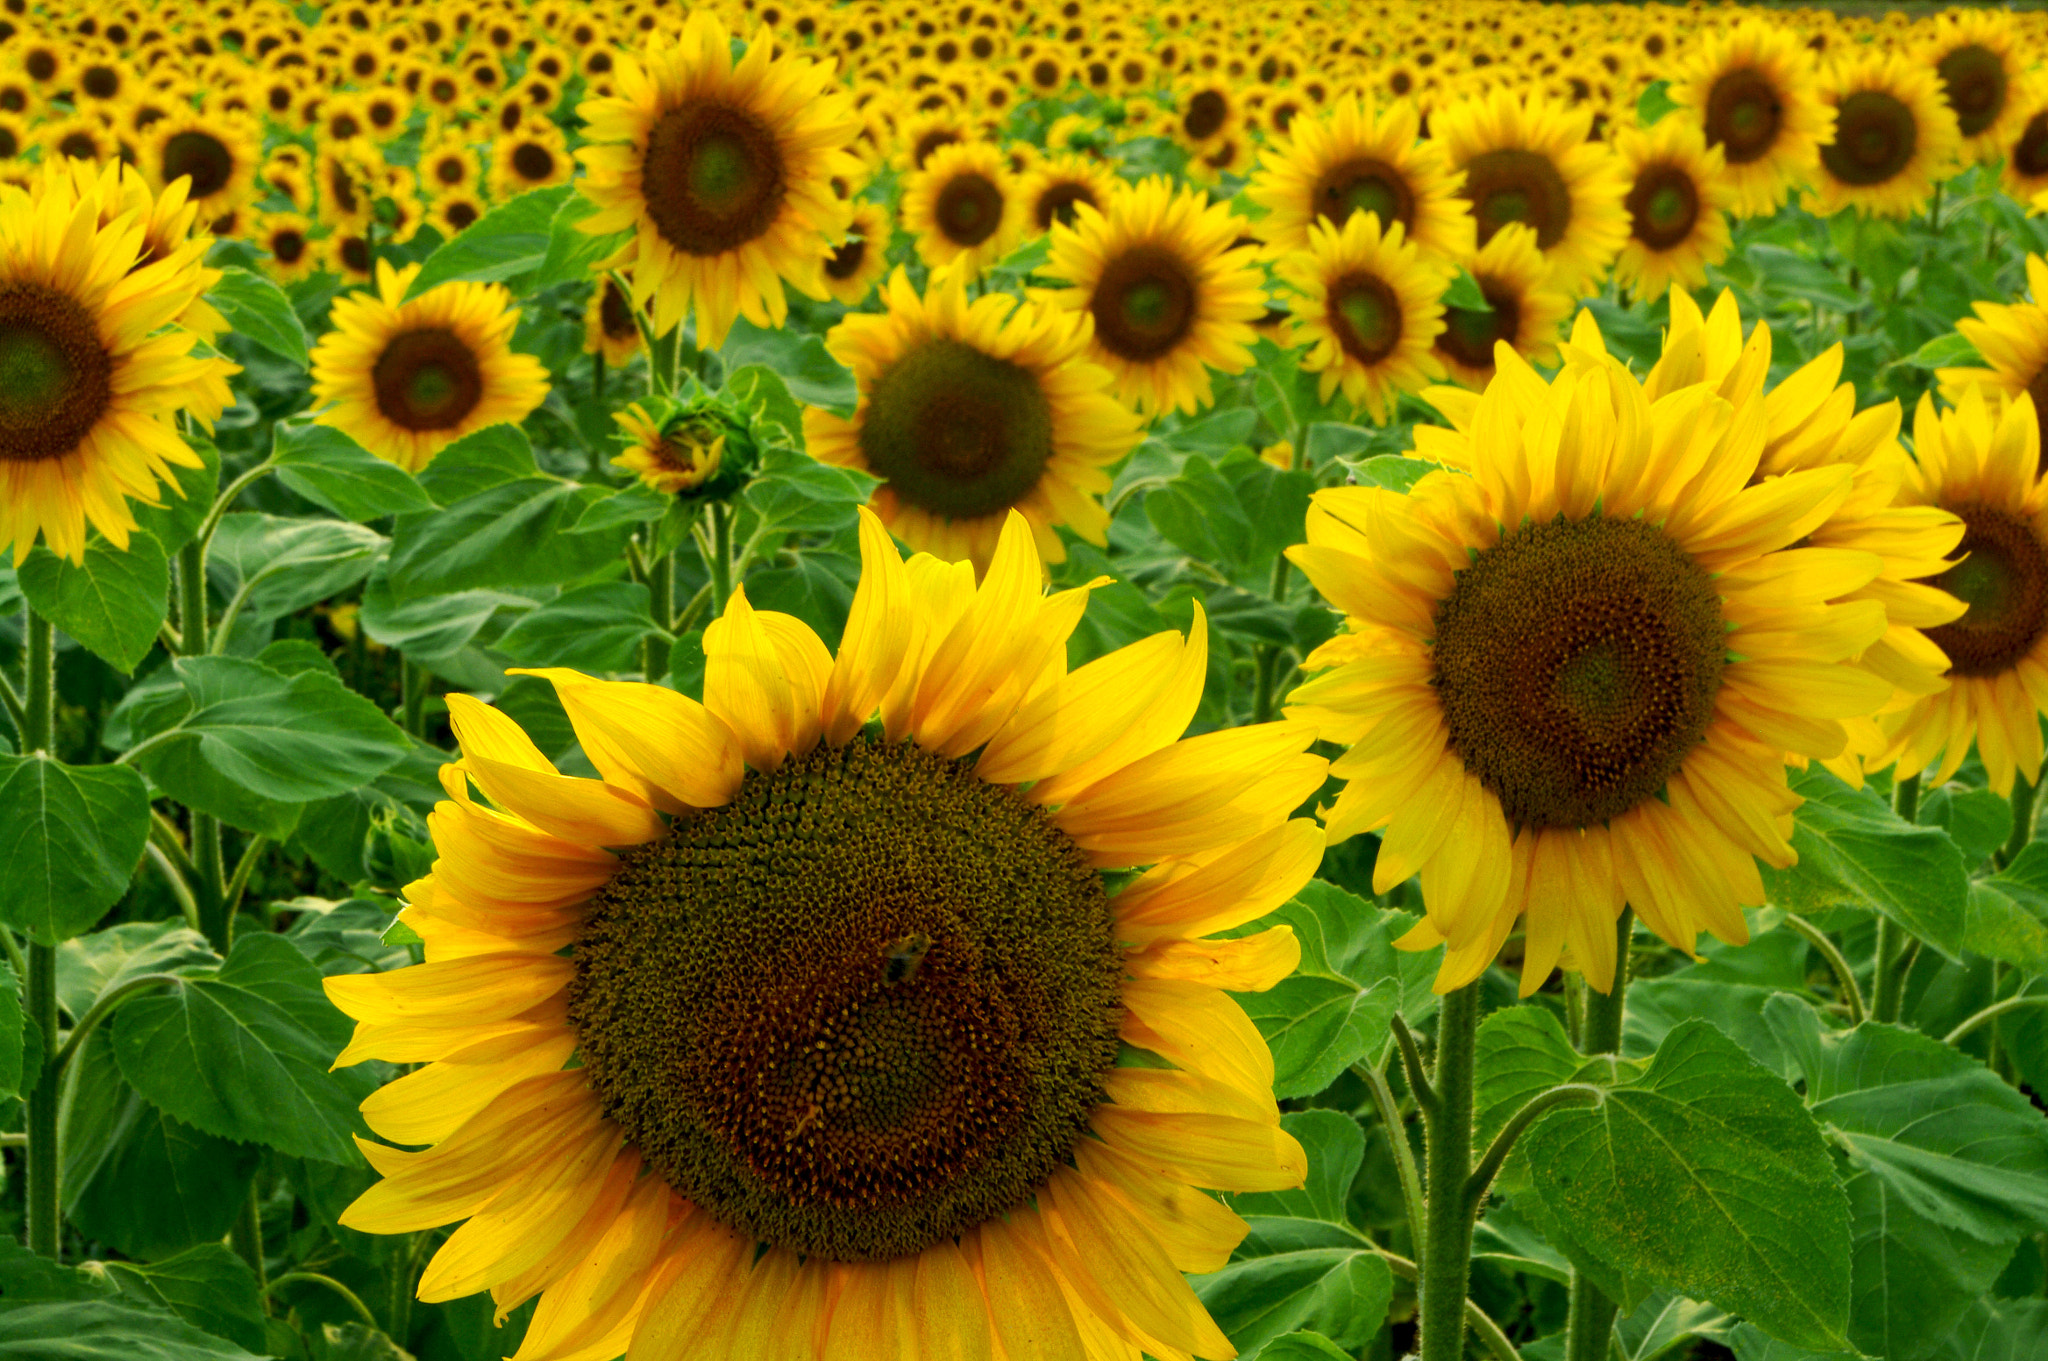 Sunflowers_(44662222)